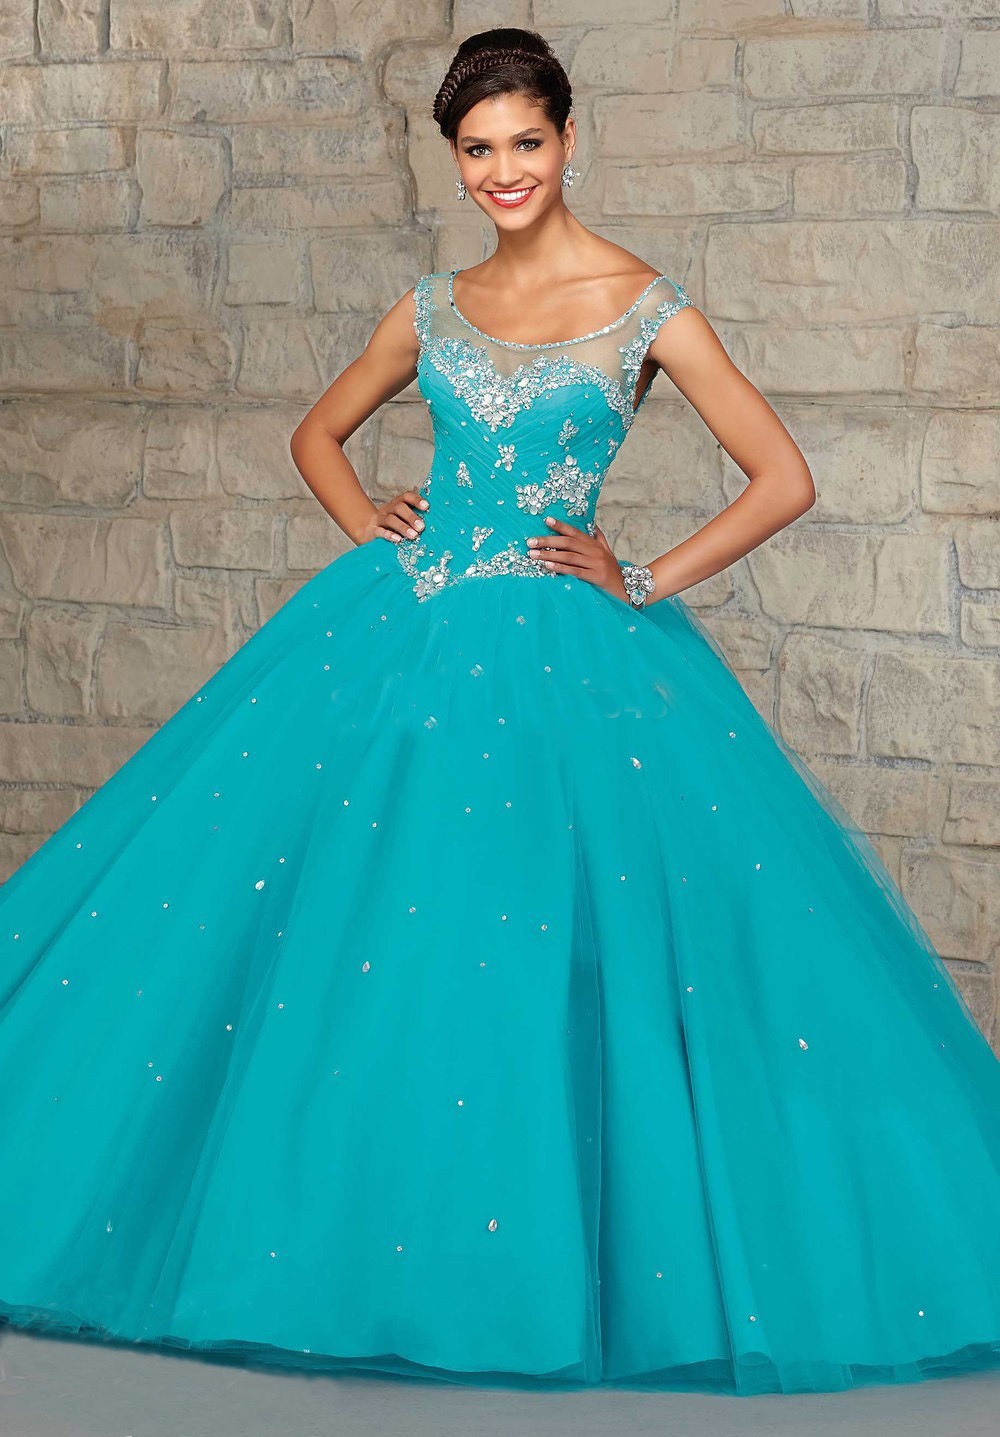 Blue Wedding Dresses with Color Accents | Dress images